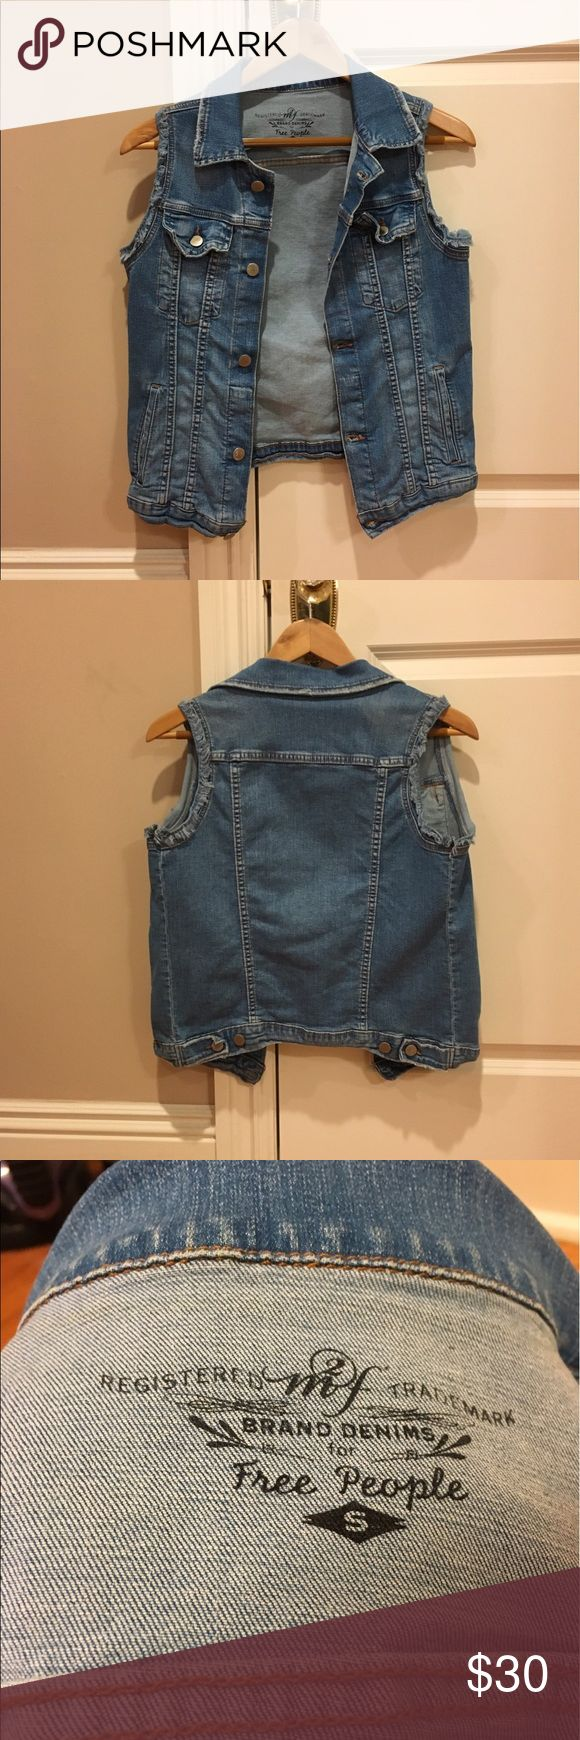 Free People Denim Vest Everyday and versatile denim vest! Super stretchy and comfortable material, only worn a few times! Free People Jackets & Coats Vests